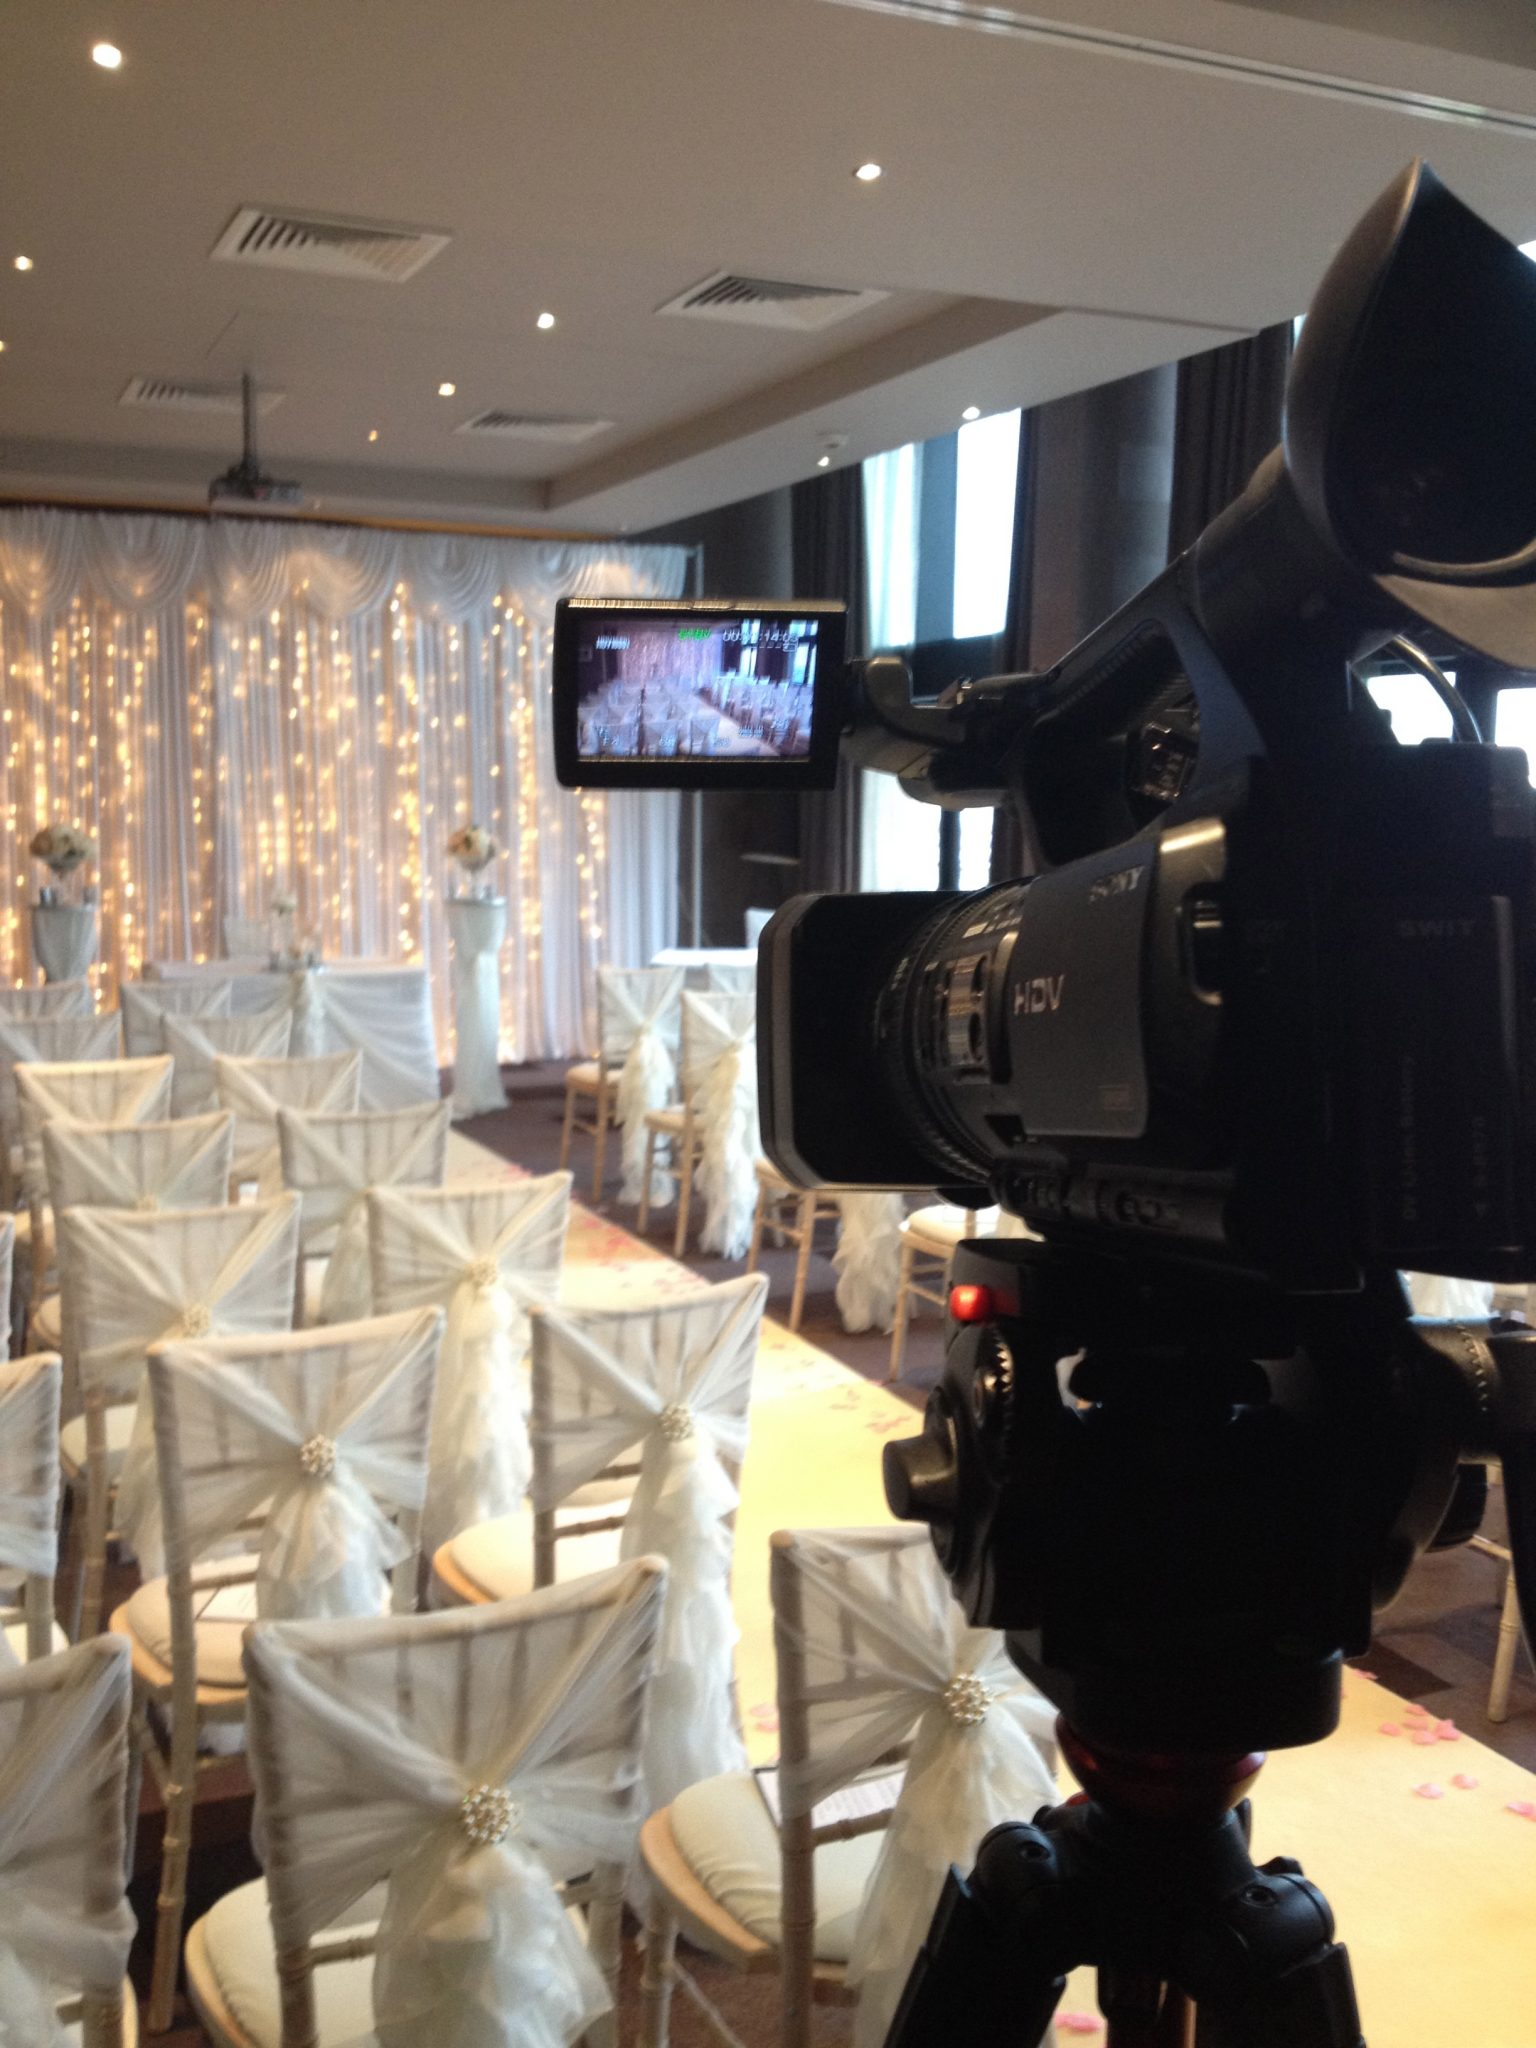 Video coverage at Liverpool Malmaison